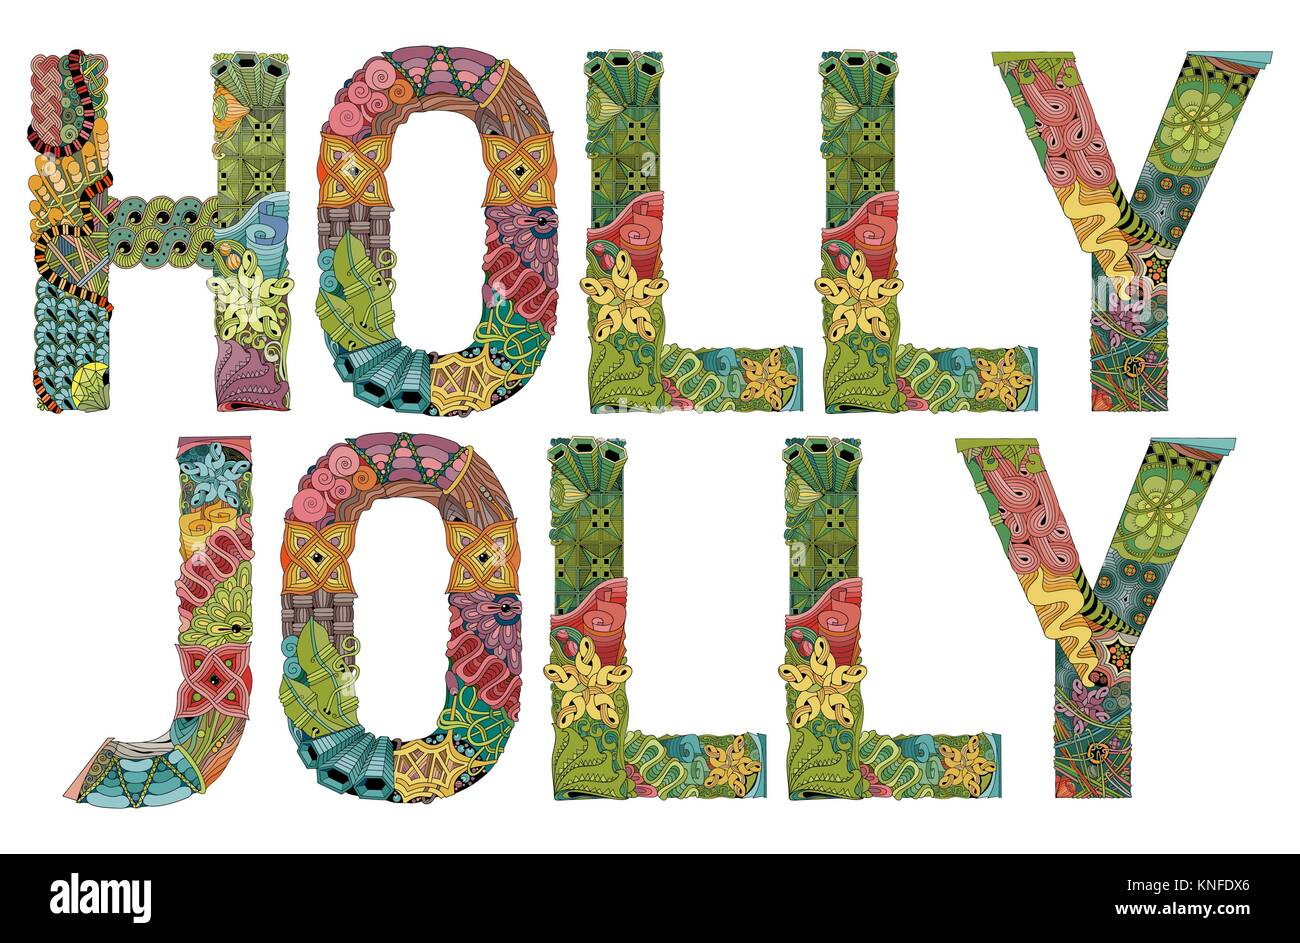 Words HOLLY JOLLY. Vector decorative zentangle object - Stock Image